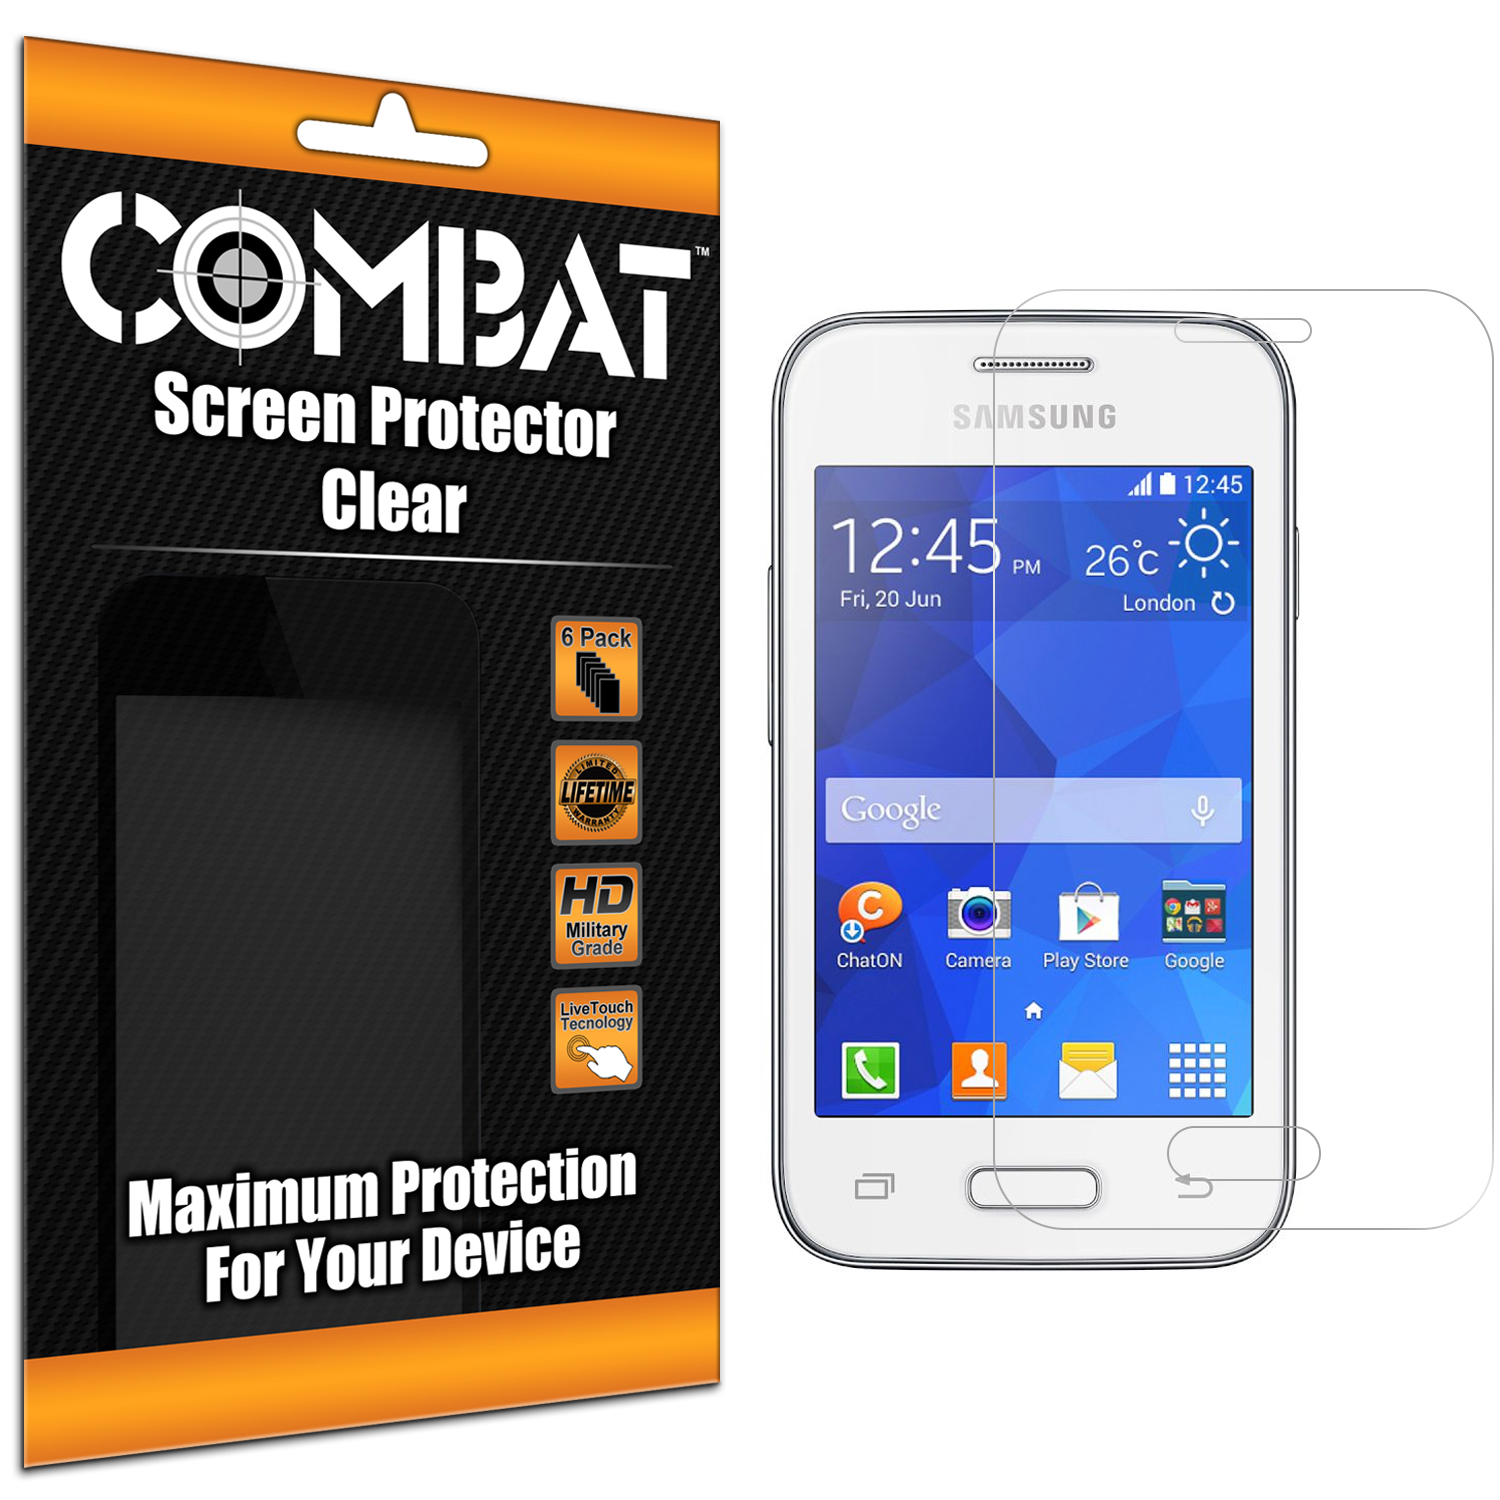 Samsung Galaxy Young 2 Combat 6 Pack HD Clear Screen Protector